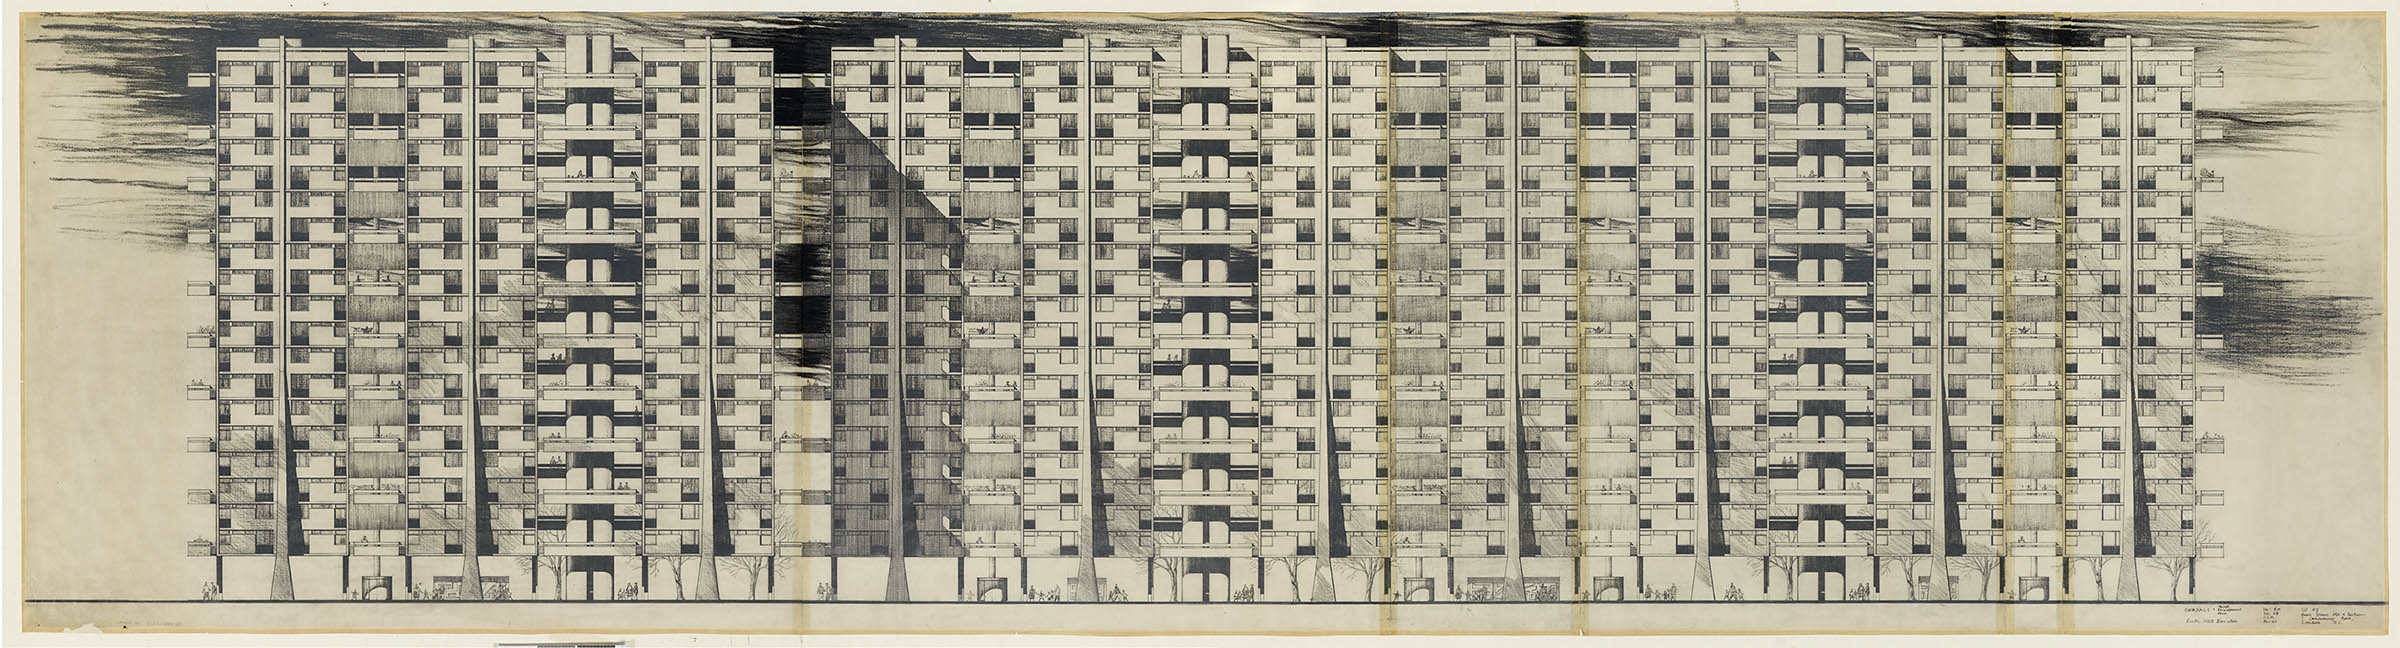 Plans for housing in 1960s Glasgow. The plans show 4 interconnected 10-storey tower blocks. There are many intricate details including would-be occupants of the flats shopping, gardening and hanging out laundry.